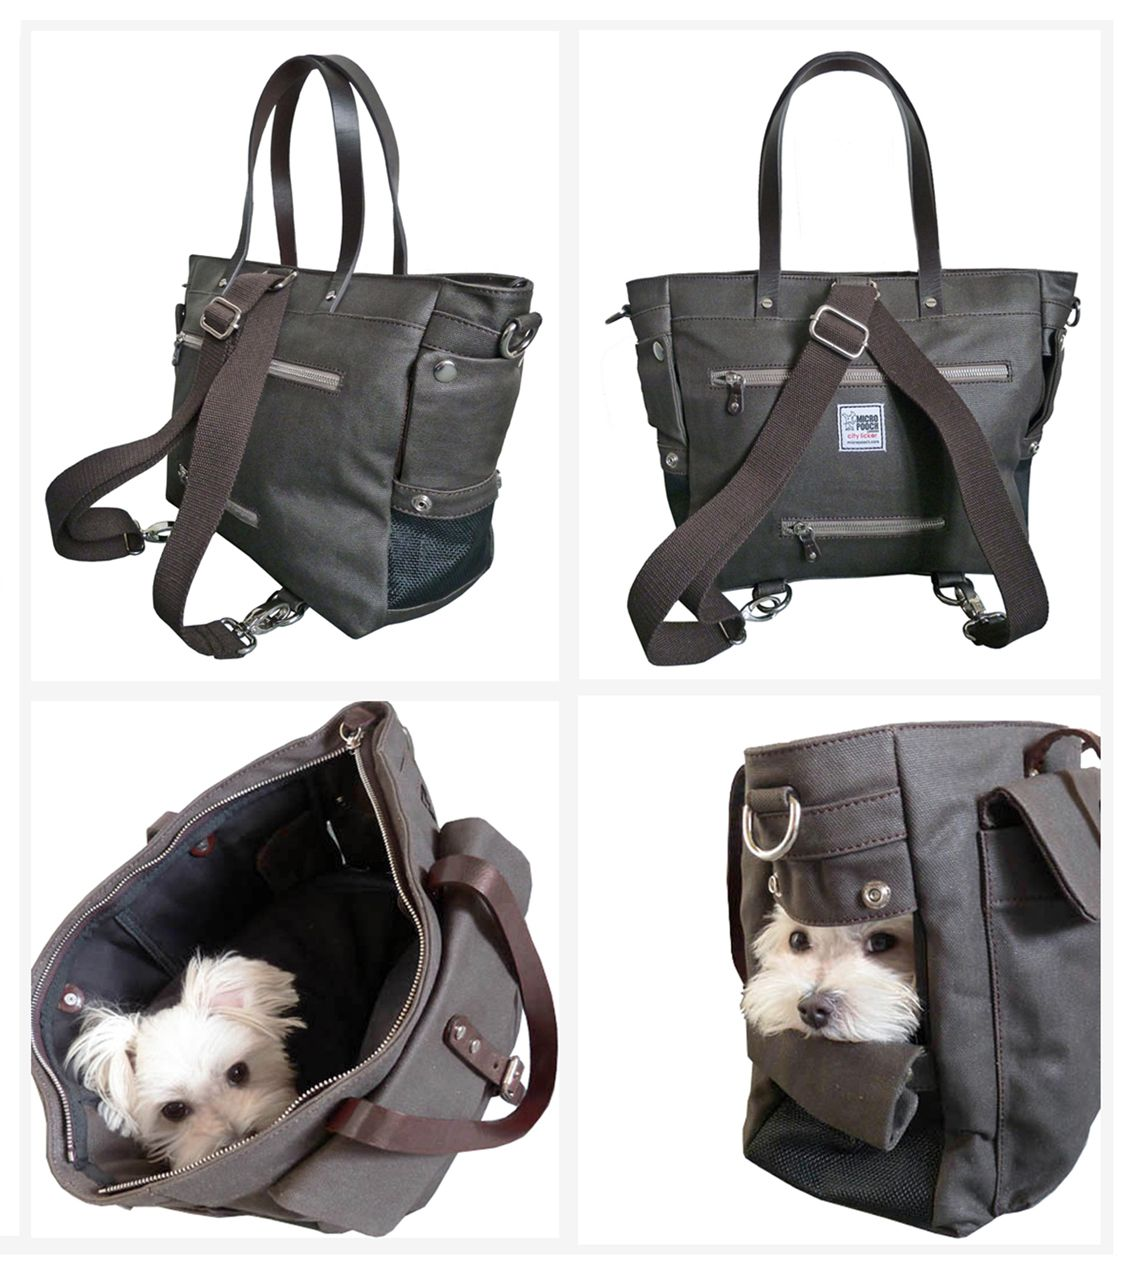 c0d262b6d DOG HANDBAG by MICRO POOCH - Stylish